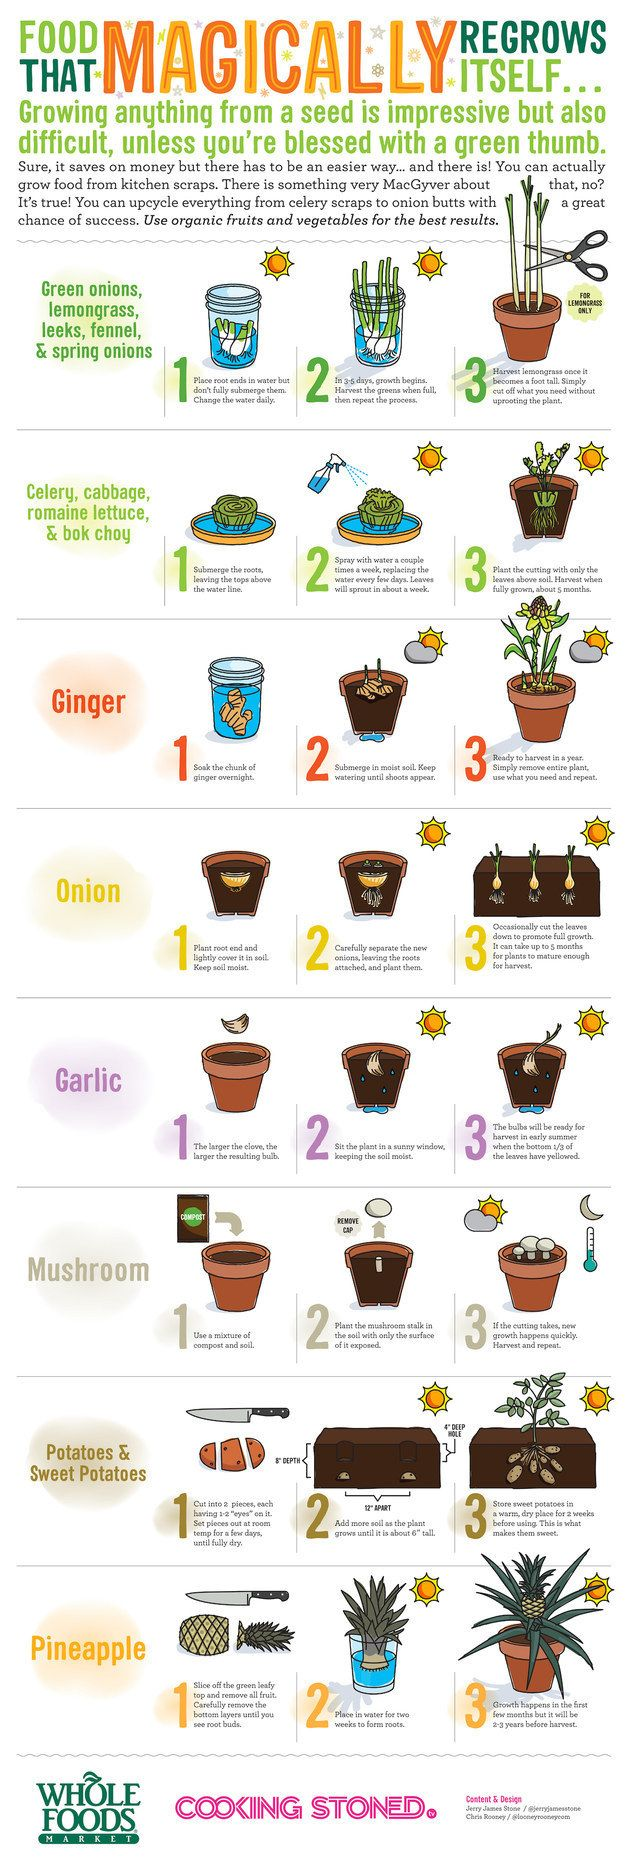 We'll all be Magician-Gardeners. Regrow food from your scraps! | These Are Going To Be The 16 Biggest Food Trends In 2016, According To...